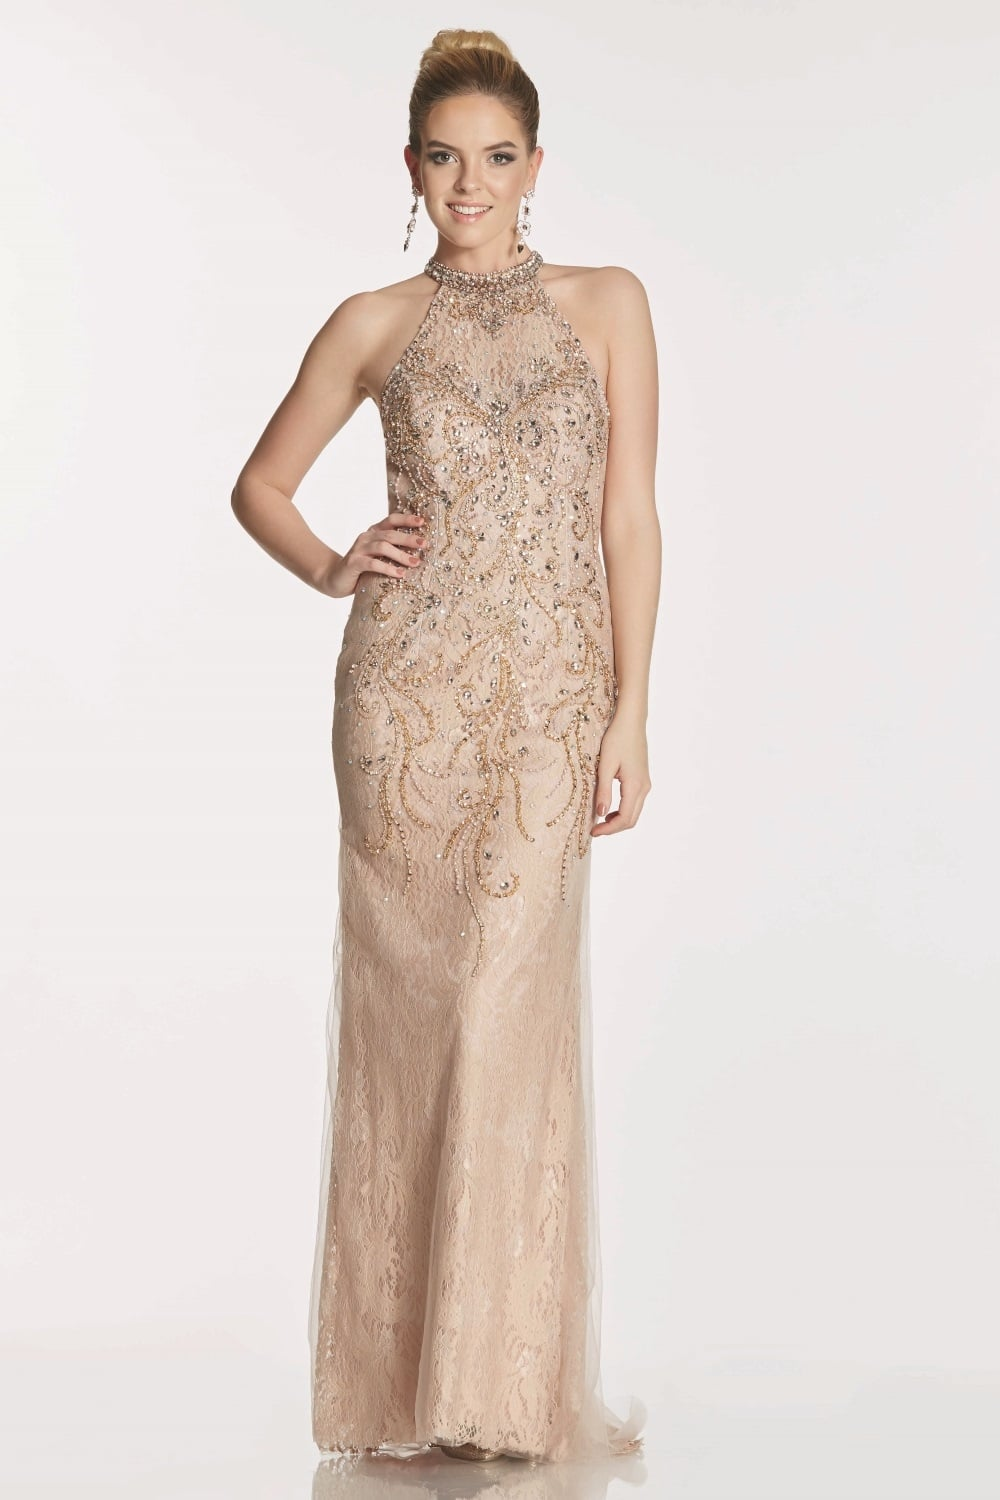 Dresses for any occasion, Prom and Ball Gowns at best UK price here